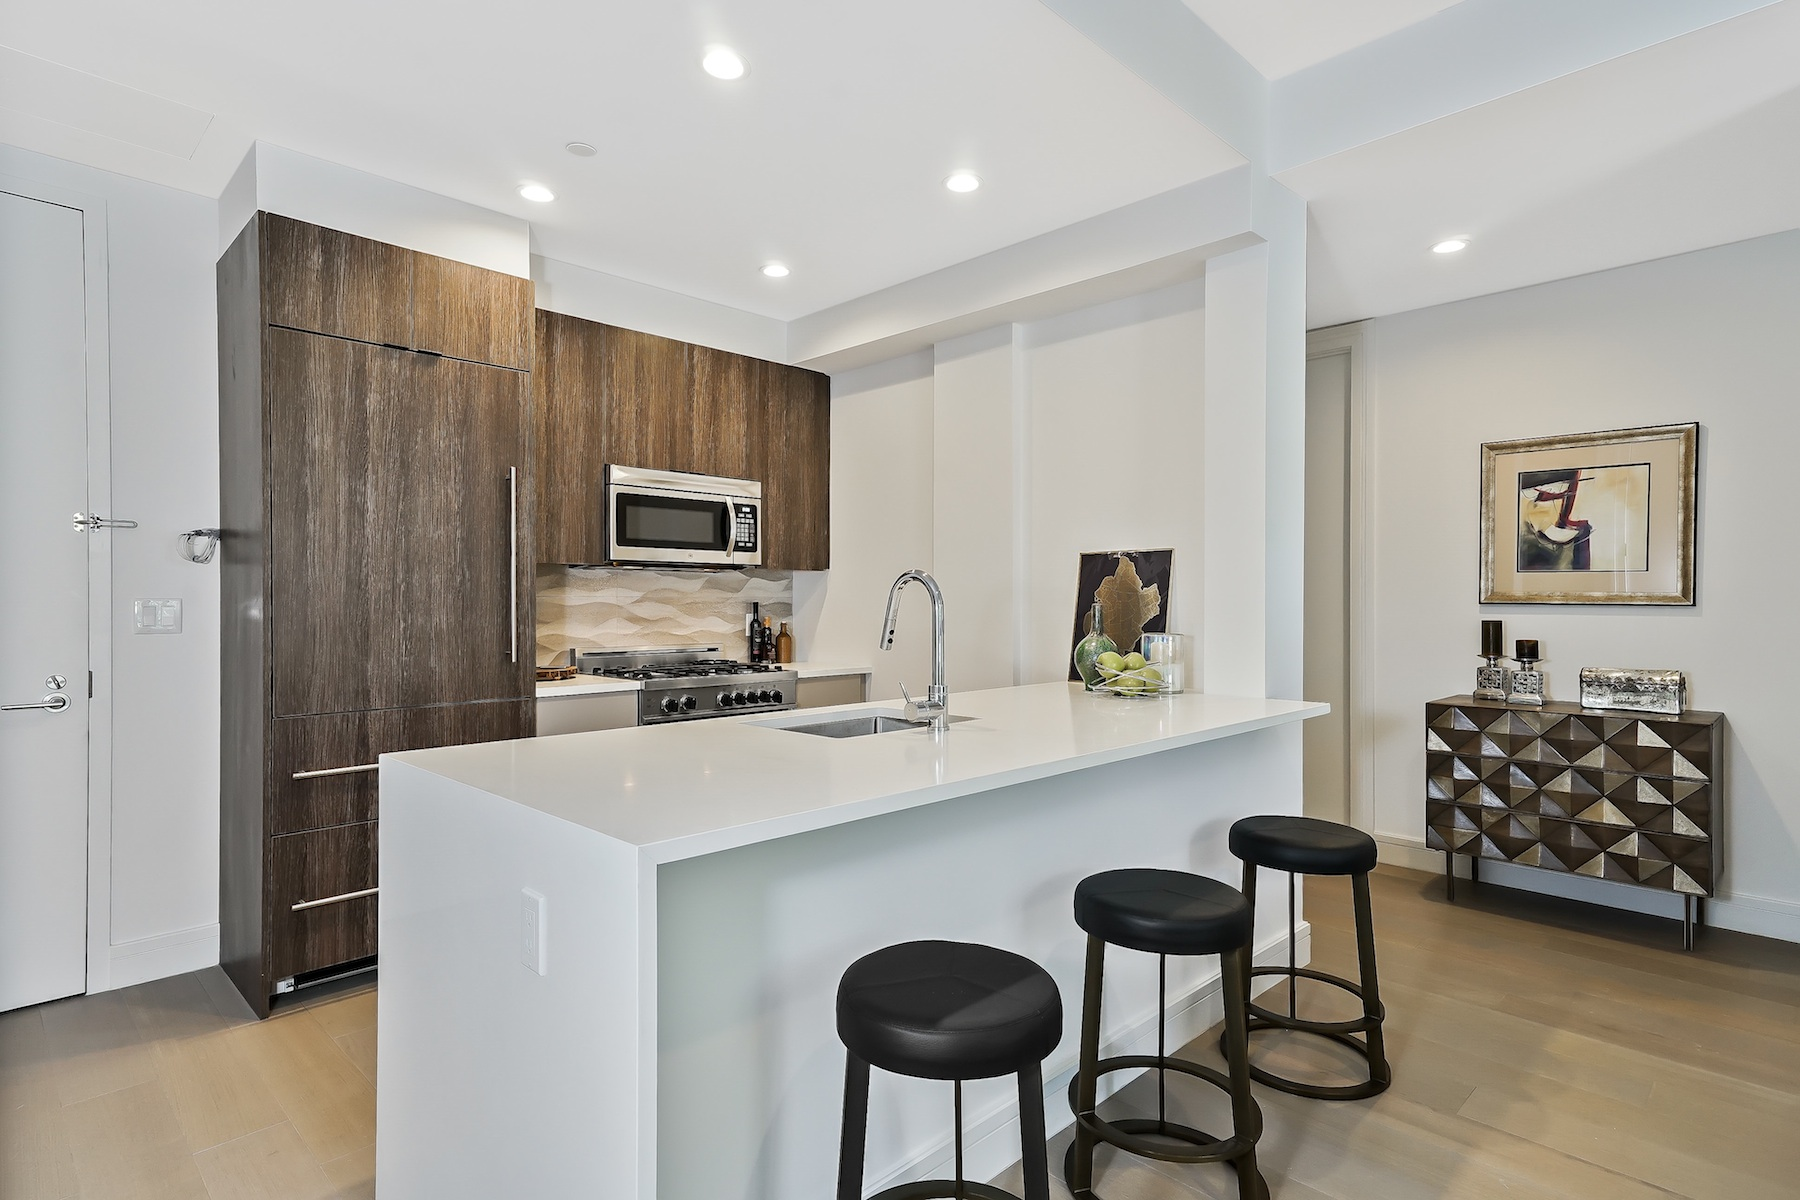 Additional photo for property listing at Stanton on Sixth 695 6th Avenue 3D Brooklyn, New York 11215 United States